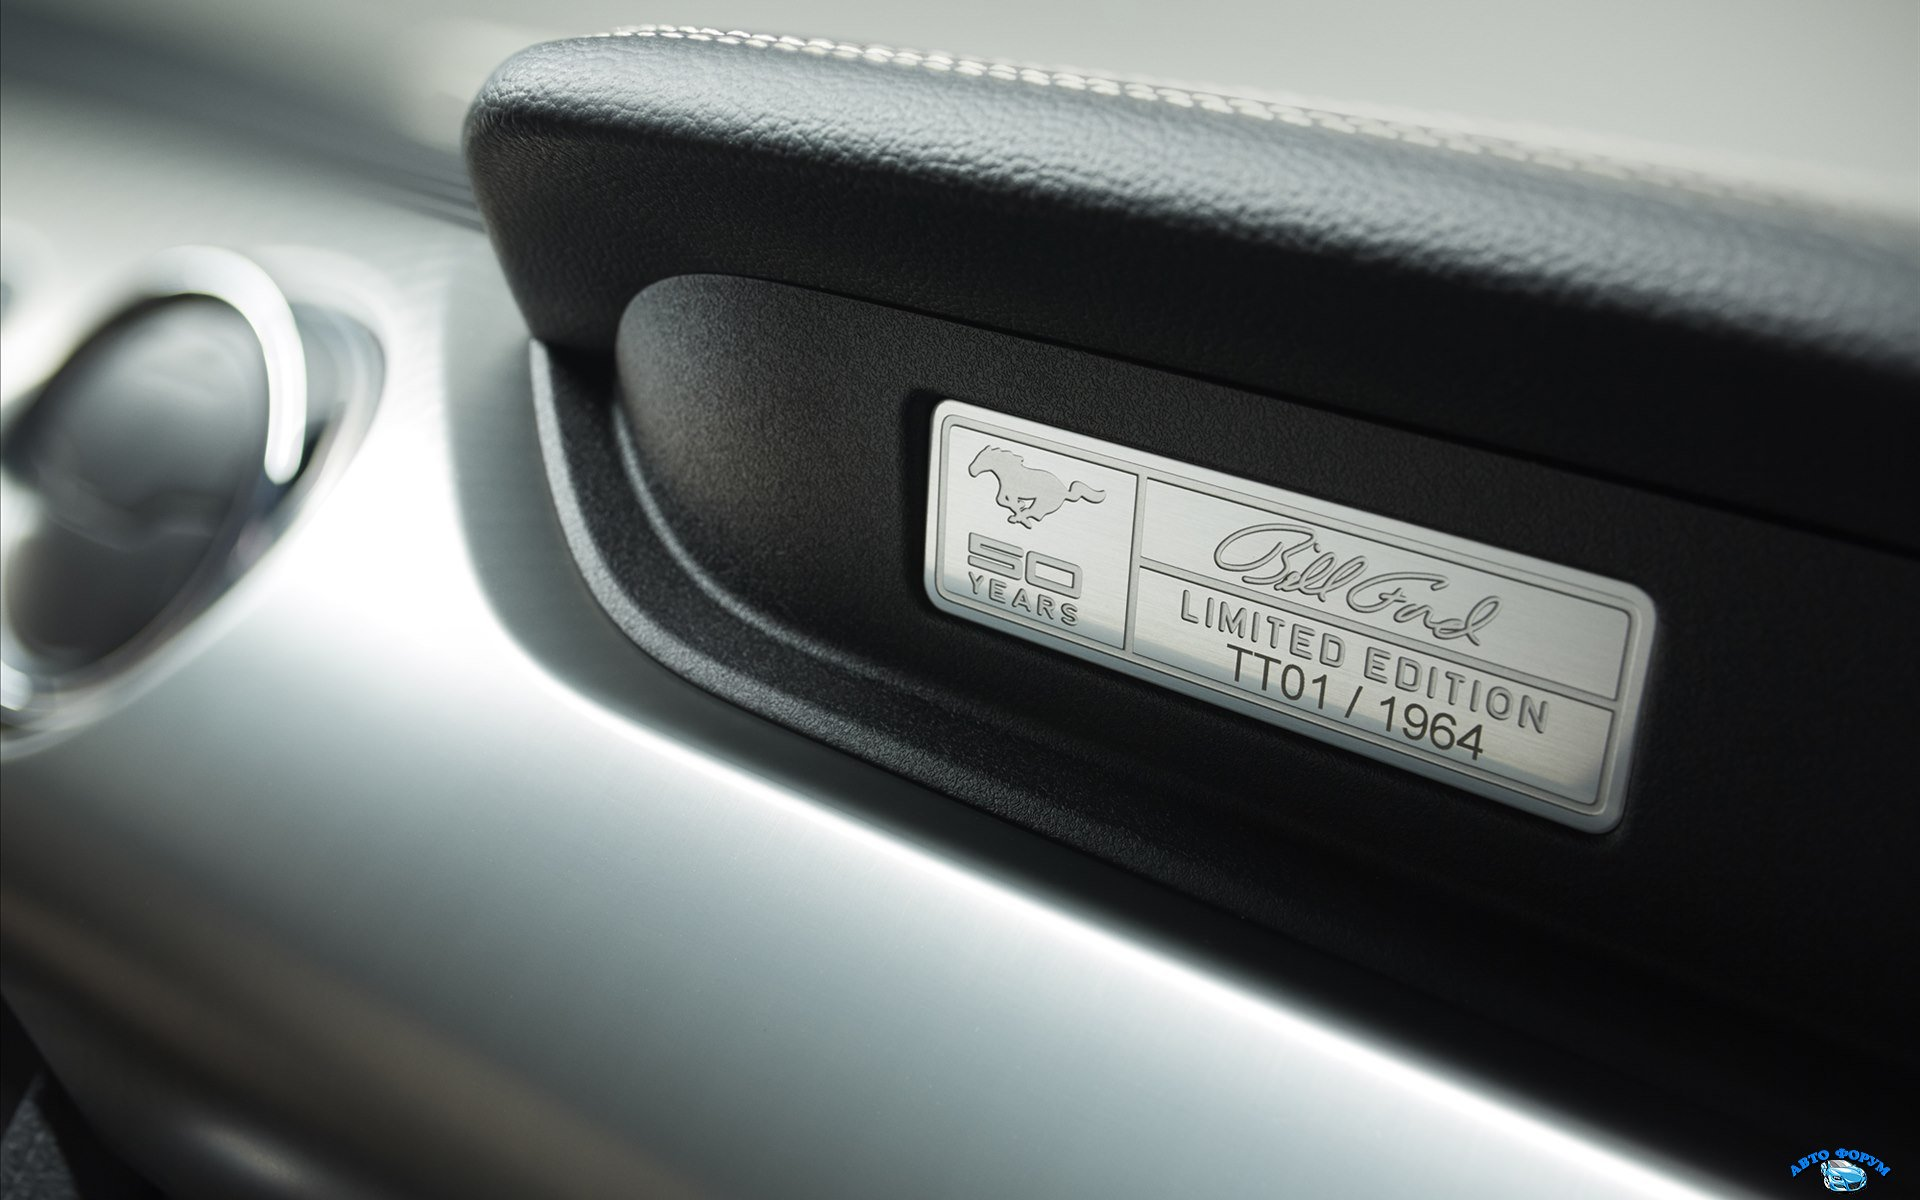 Ford-Mustang-50-Year-Limited-Edition-2015-widescreen-08.jpg